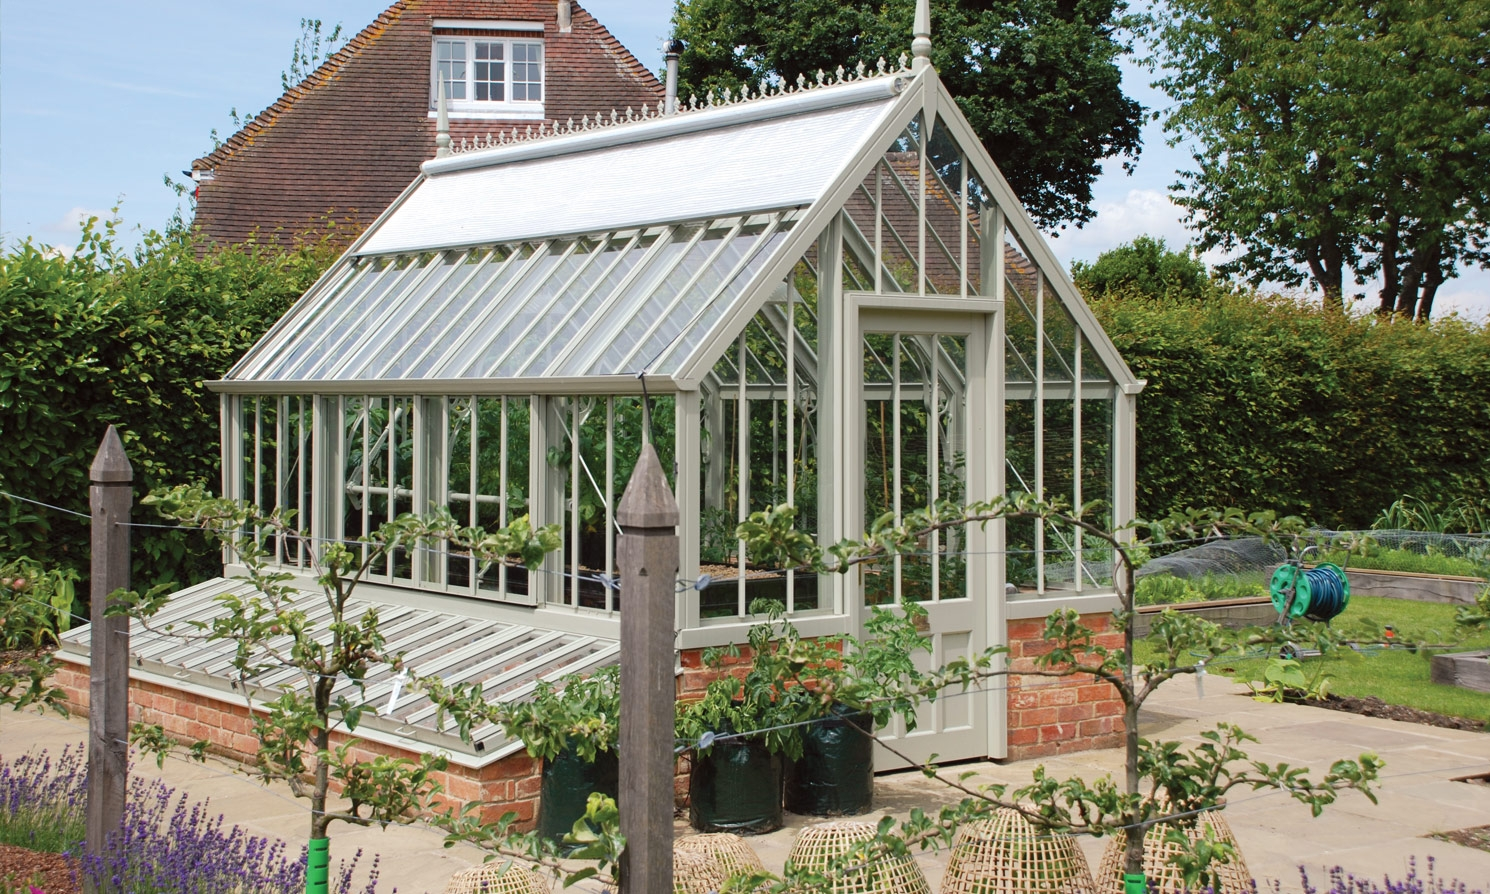 The Scotney | National Trust Greenhouses | Alitex